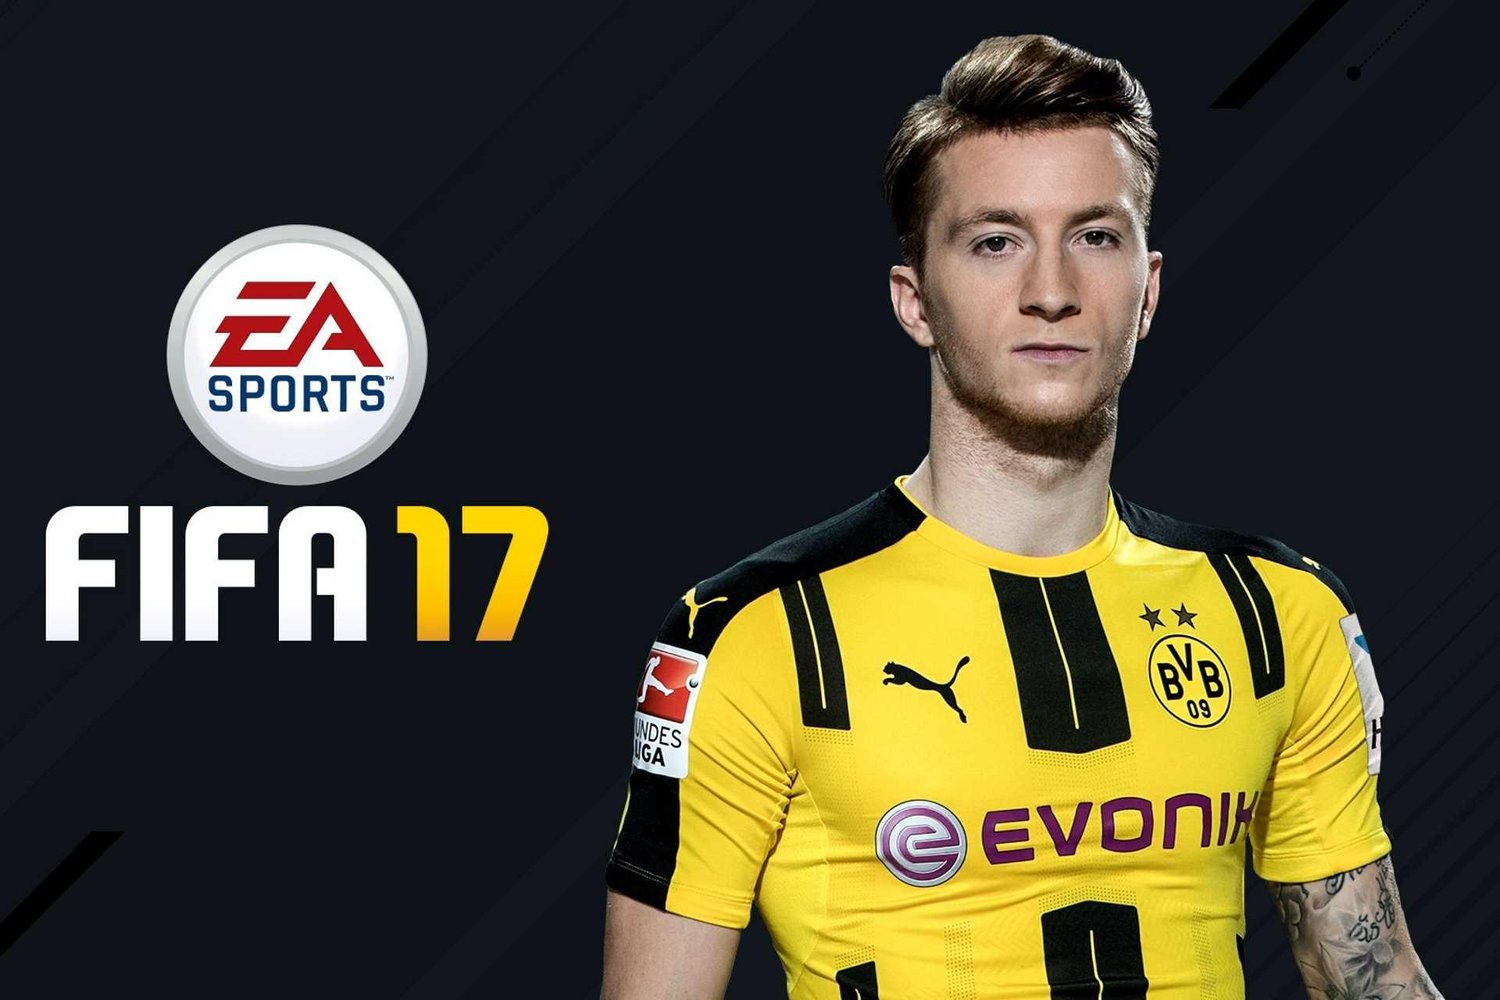 FIFA 17 BEST DRIBBLER DEFENDER